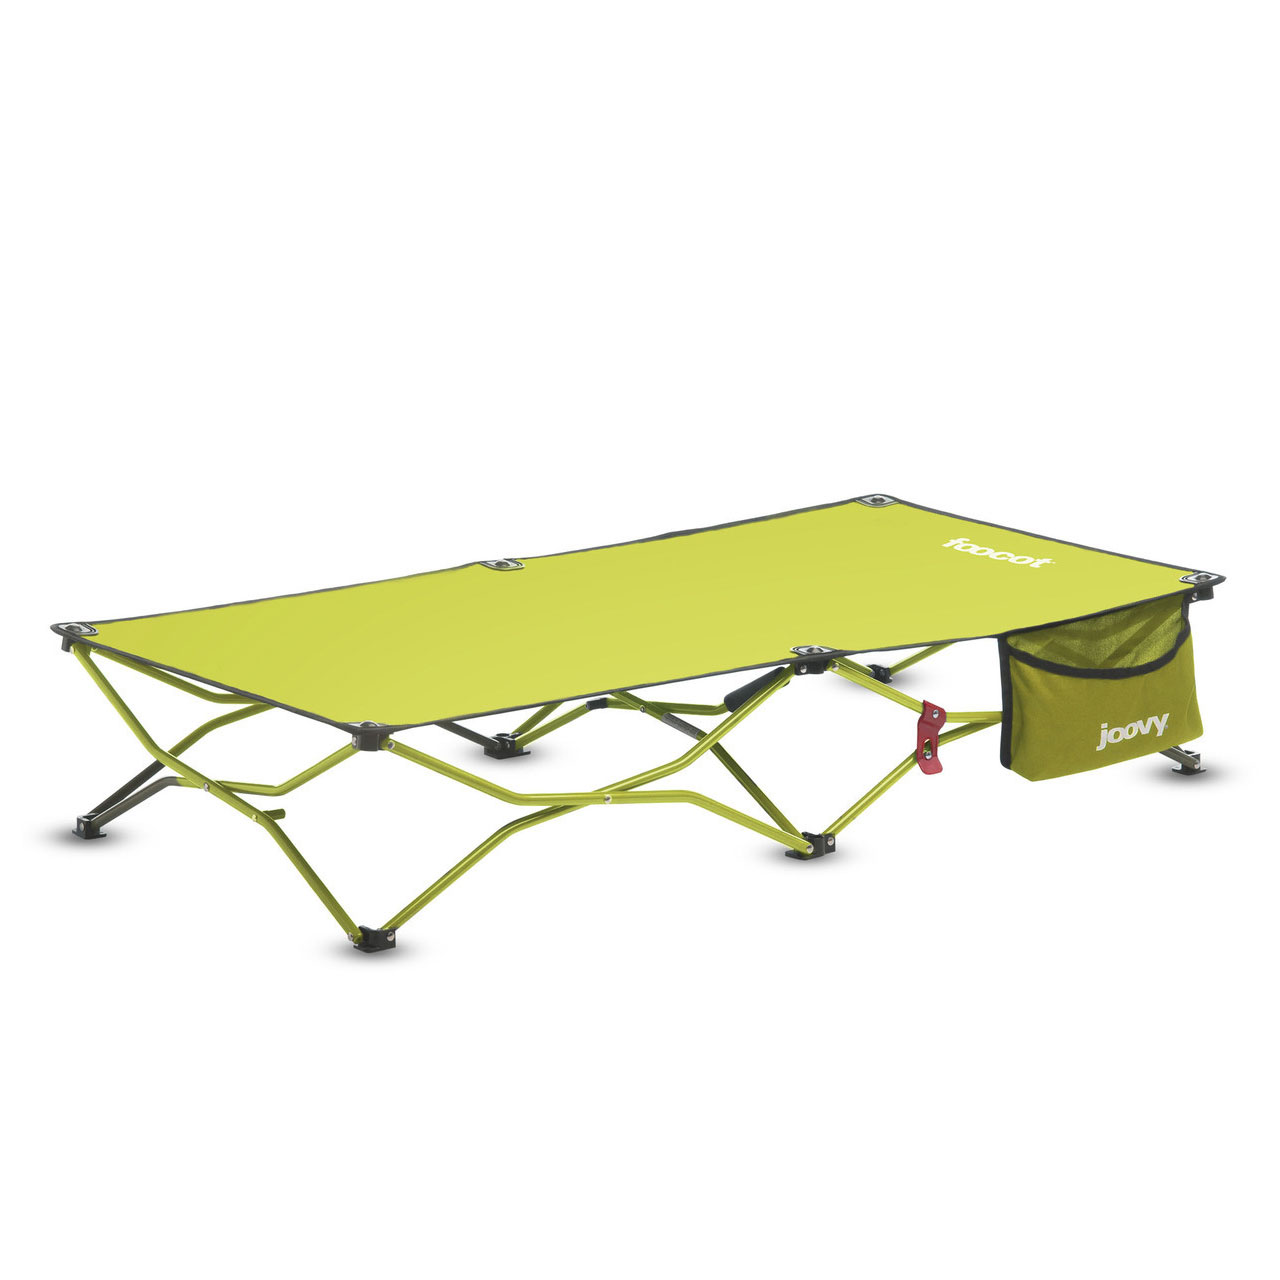 Joovy Foocot Child Cot Greenie by Joovy